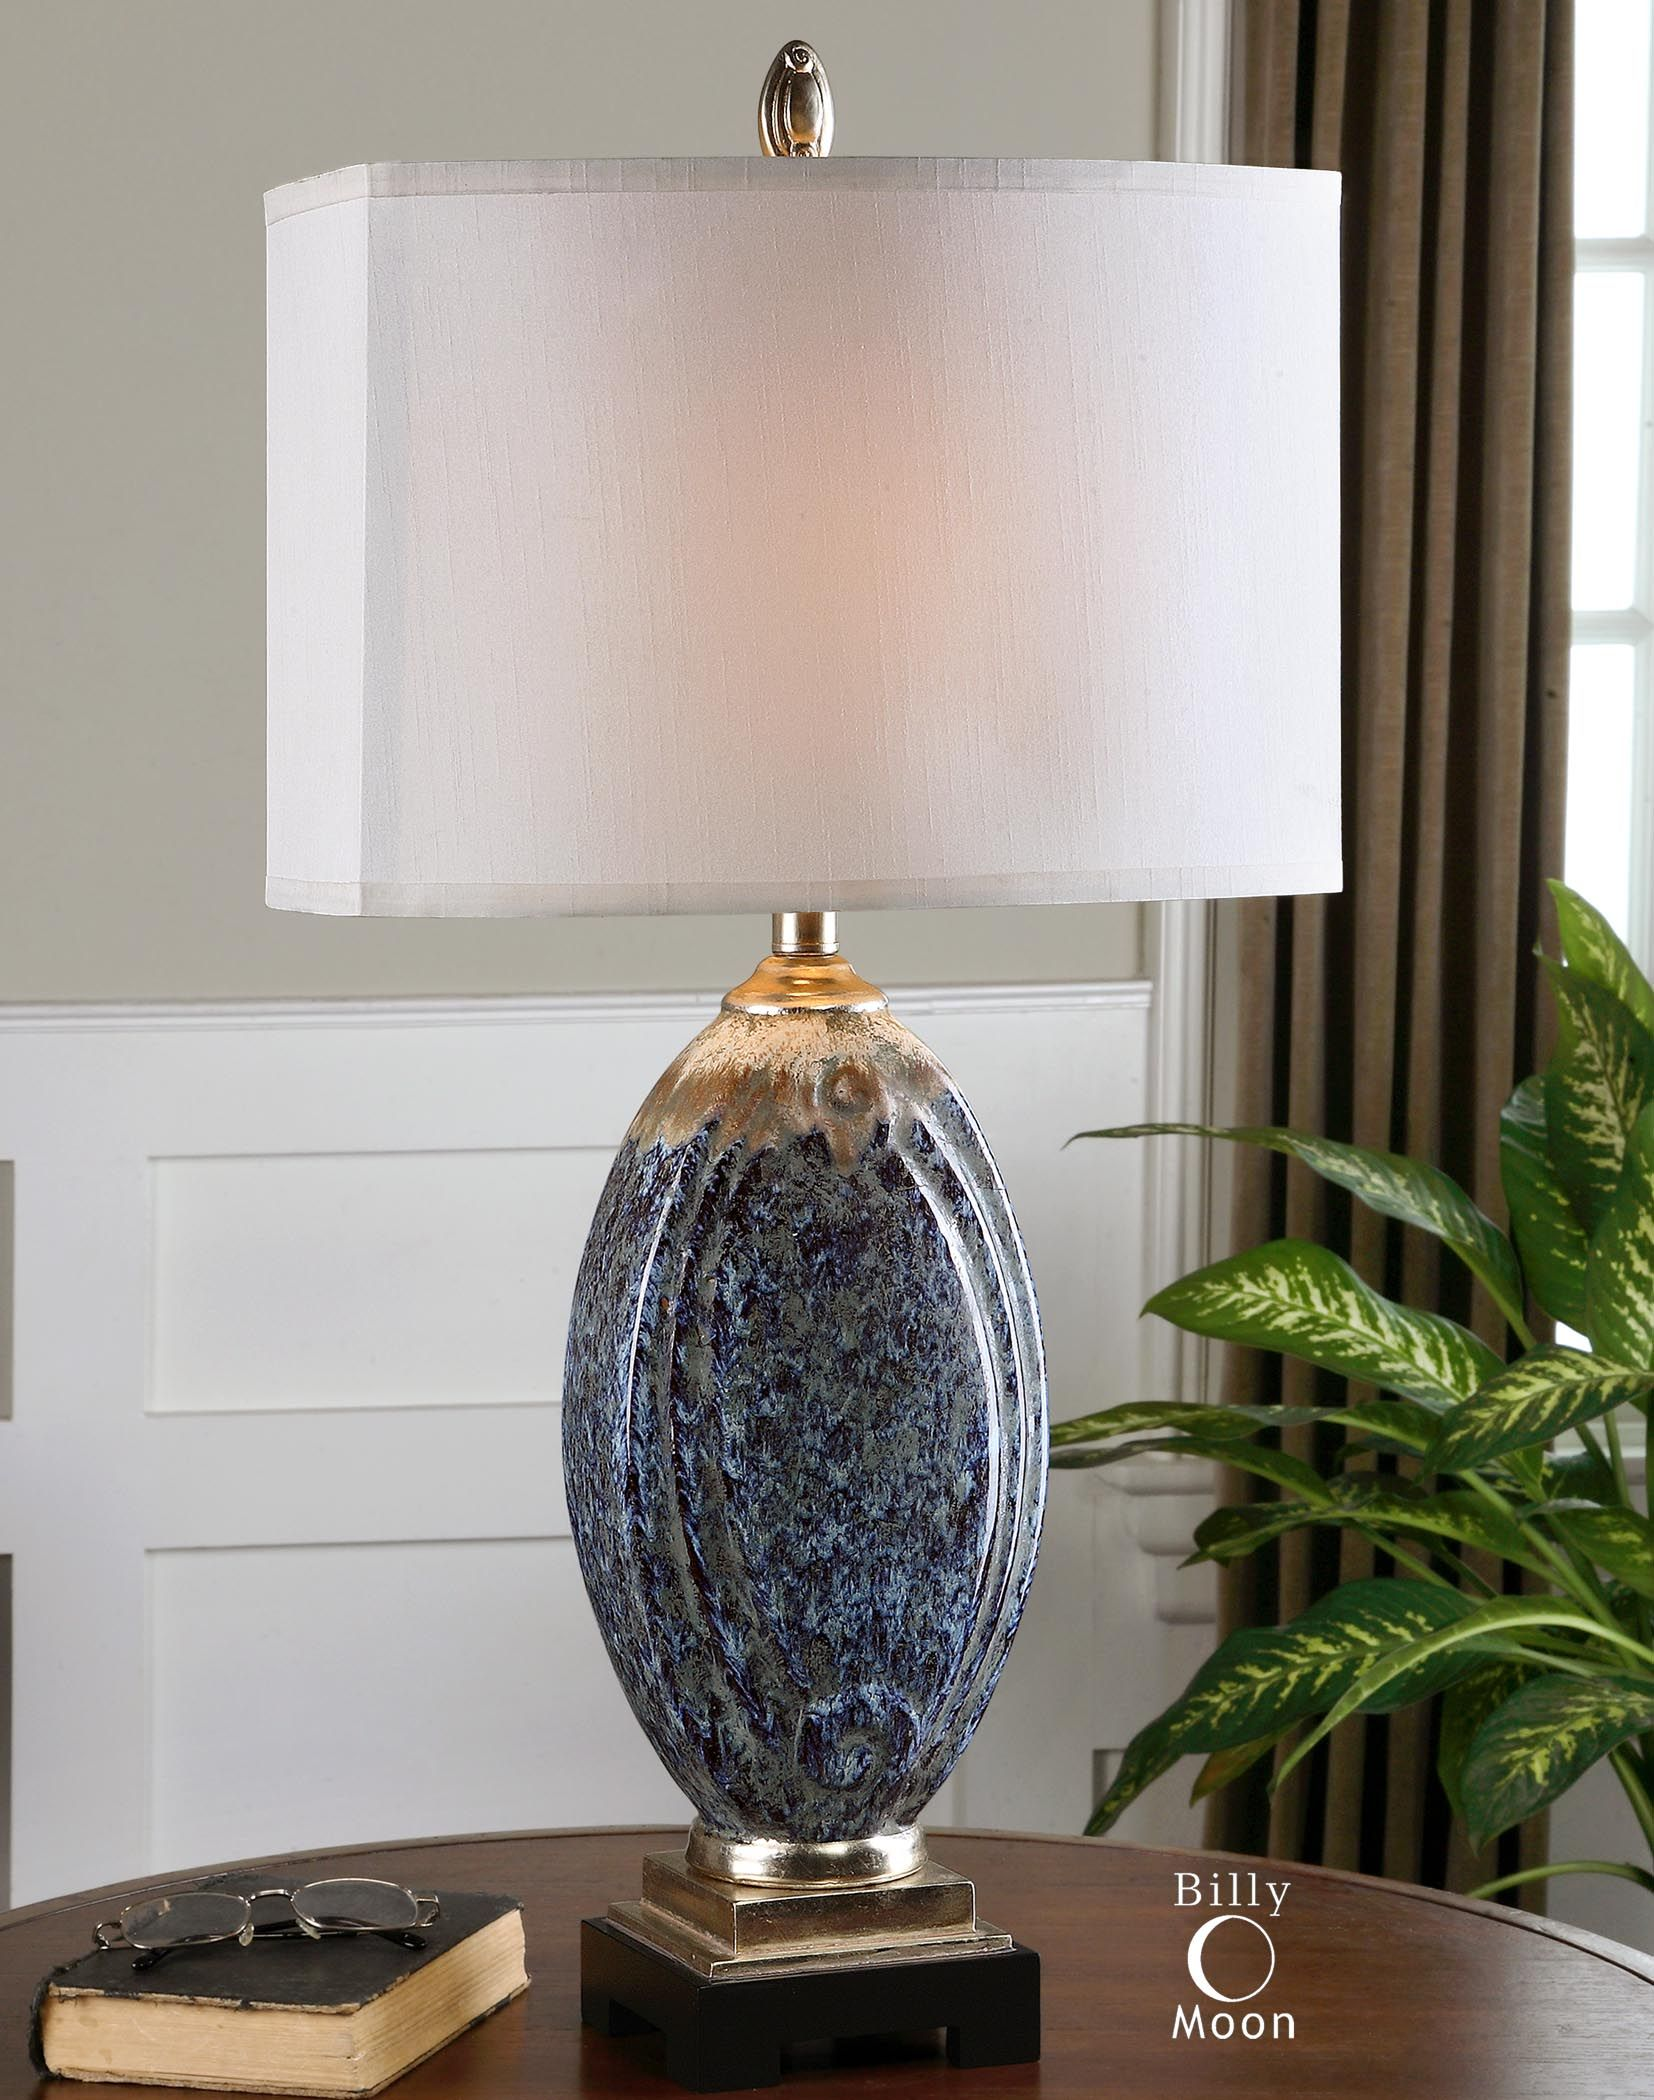 Uttermost Blue Latah Lamp - What do you think about blue lamps?